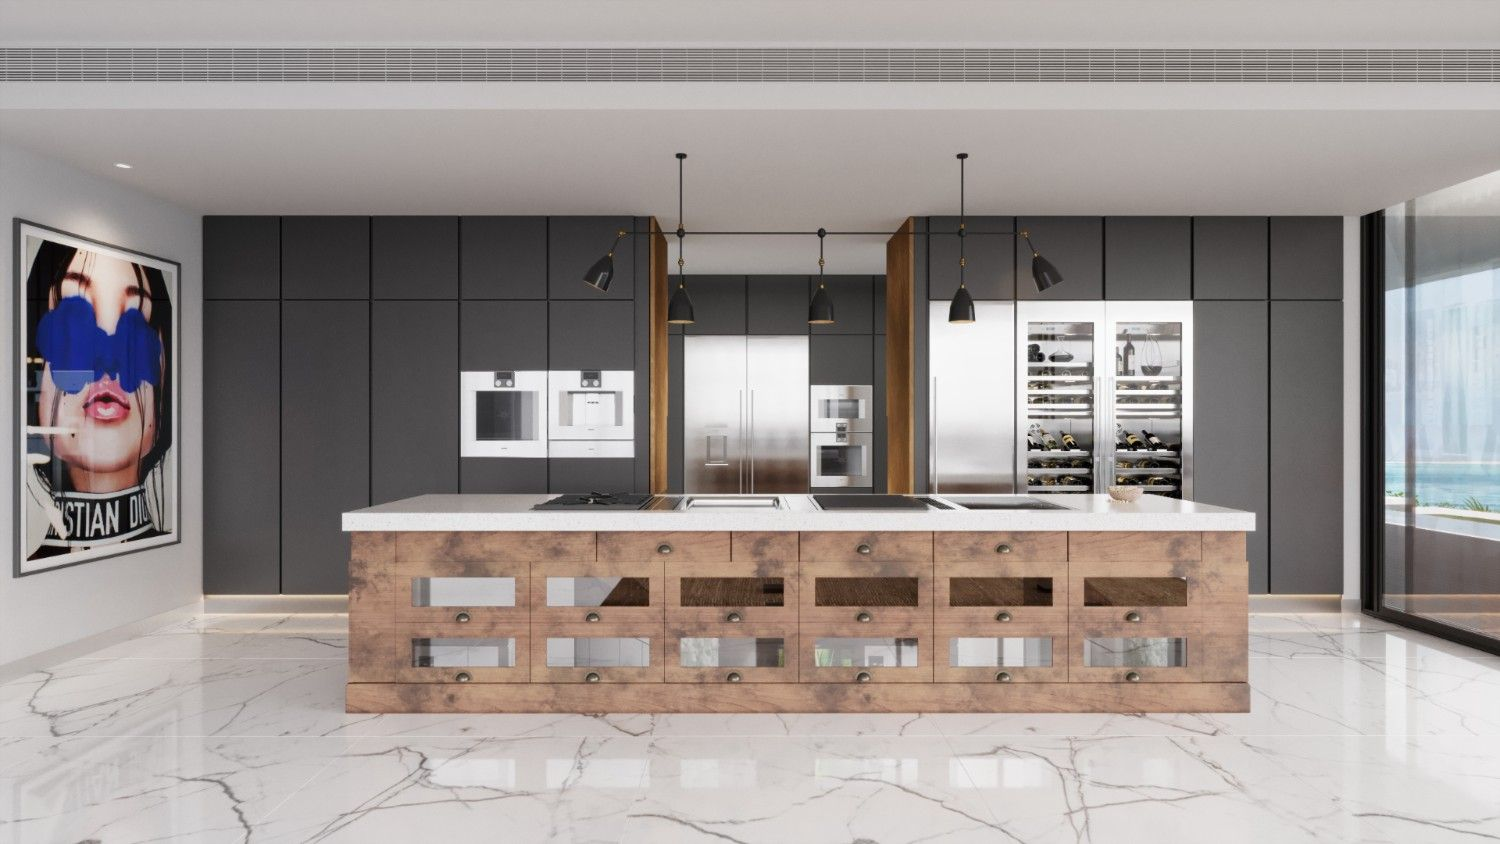 This Industrial Kitchen Design Concept Pairs Minimalist Elements With Rustic Decor